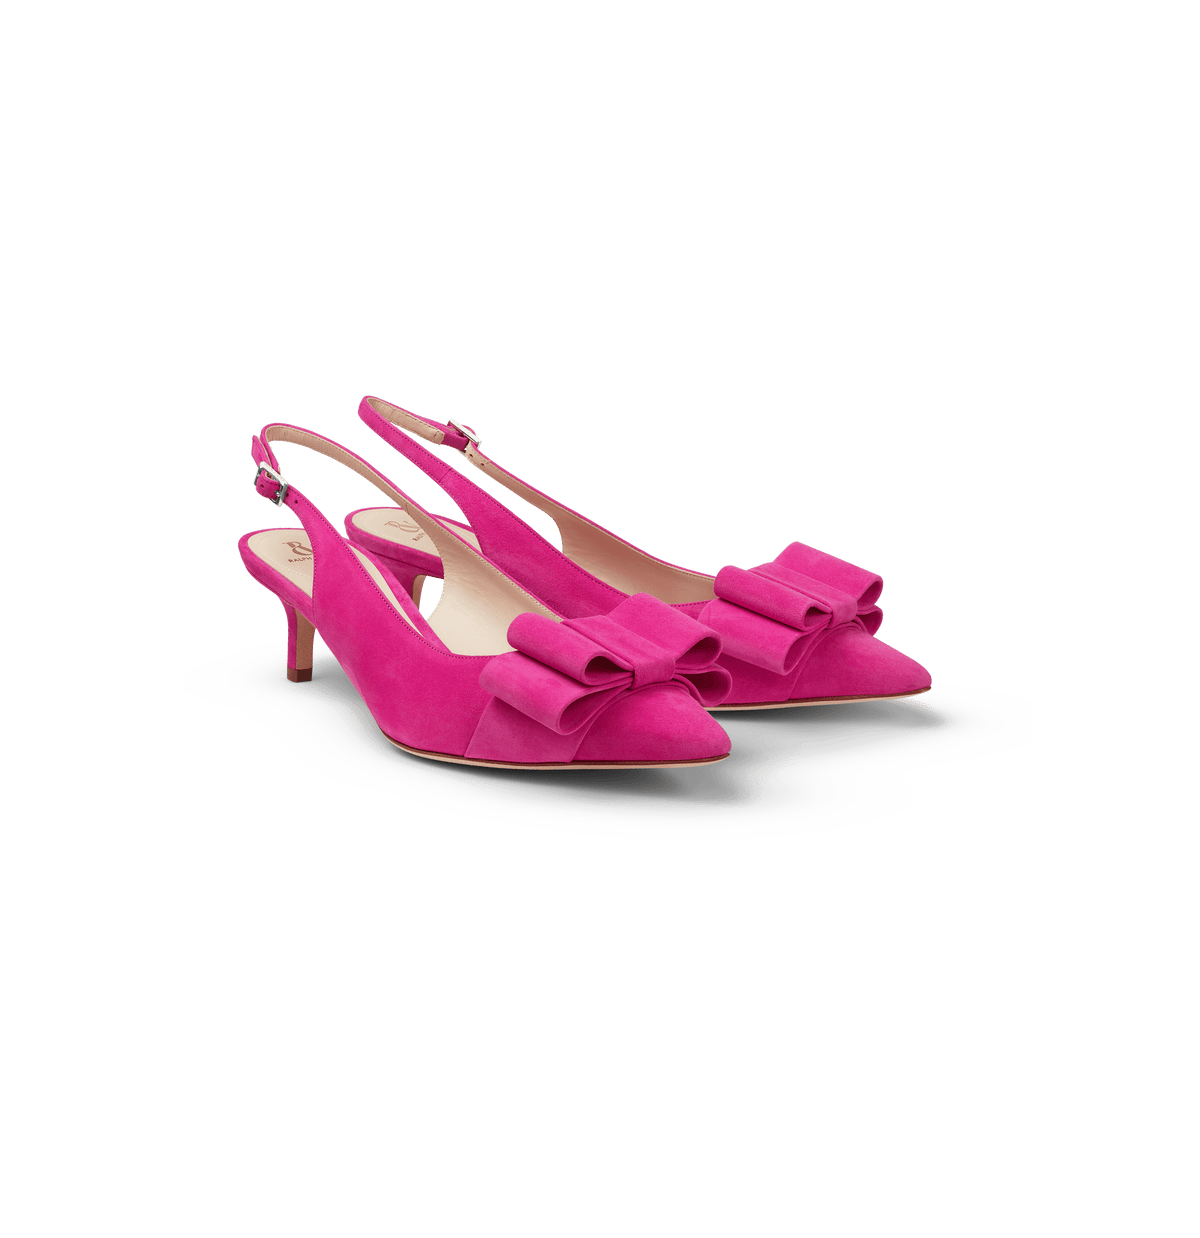 Hot Pink Suede Slingback Pumps with Bow